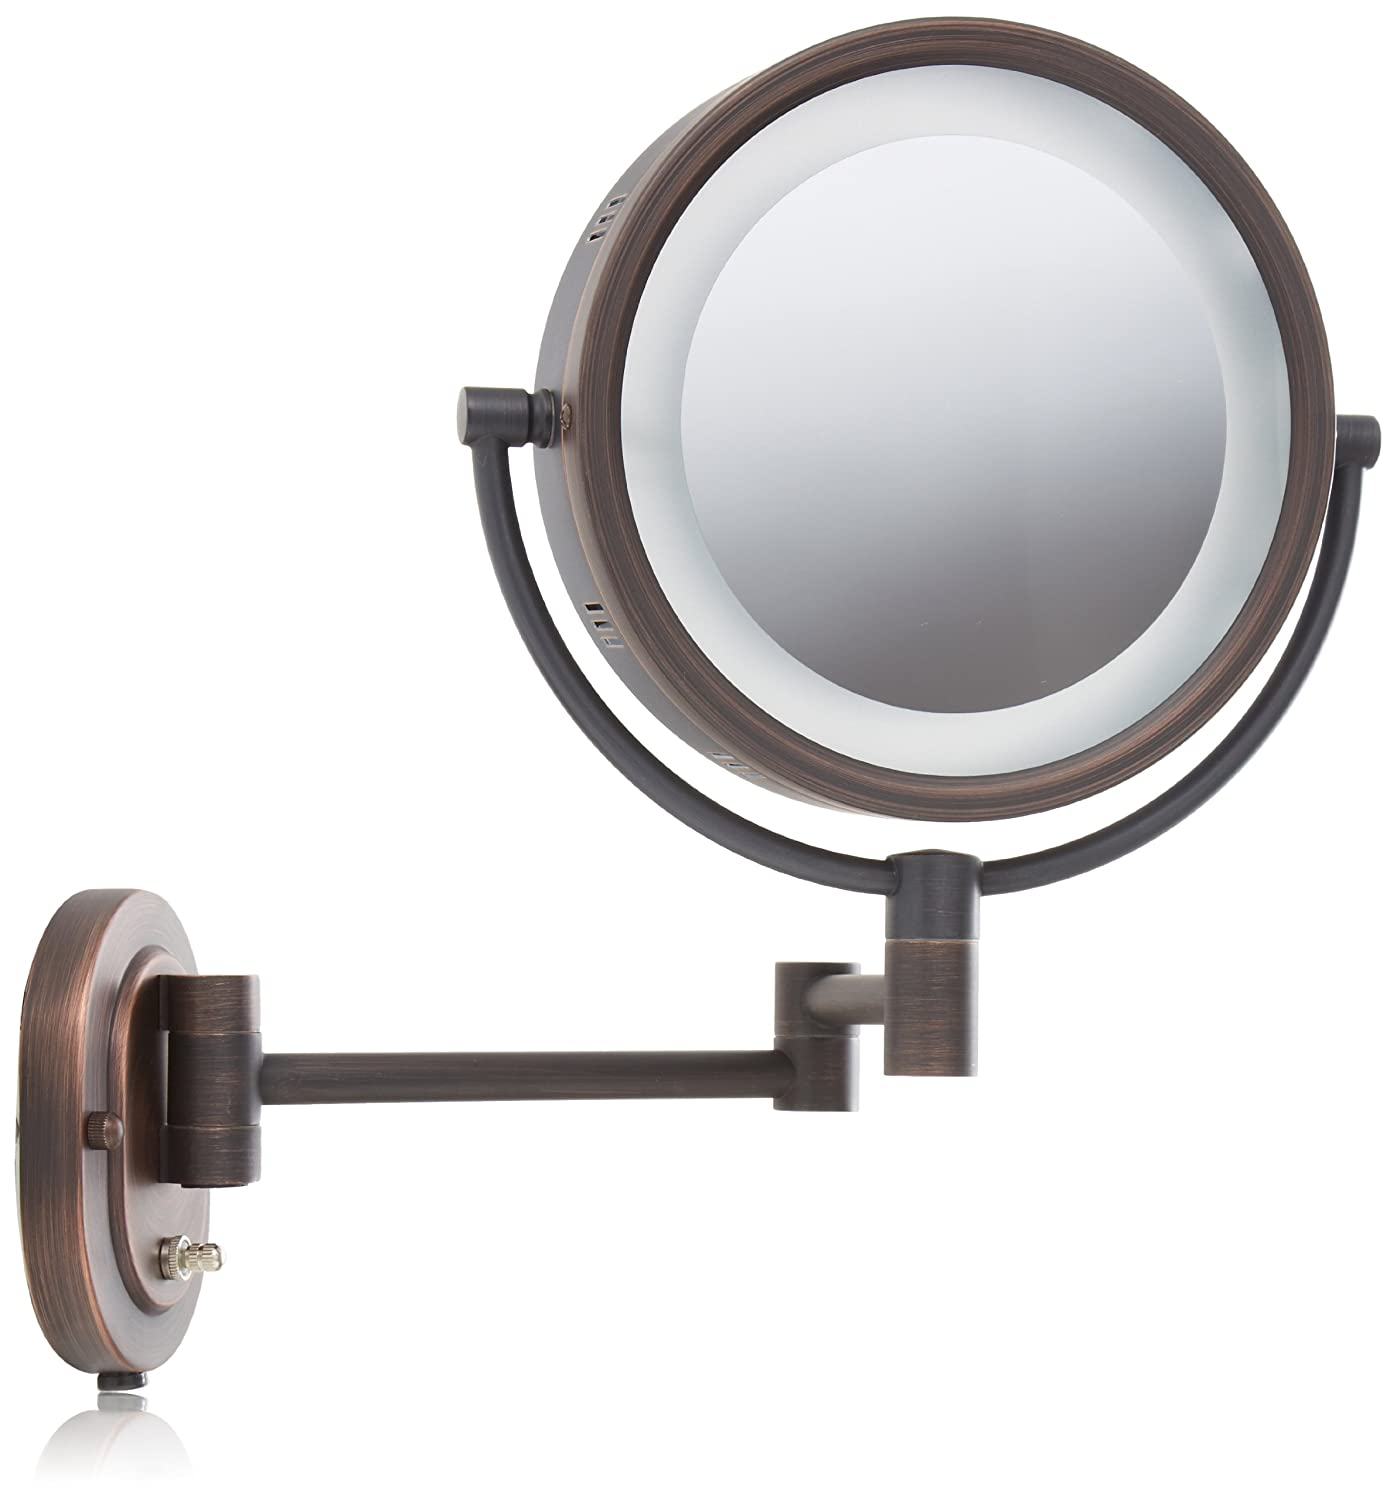 Amazon jerdon hl65bz 8 inch lighted wall mount makeup mirror amazon jerdon hl65bz 8 inch lighted wall mount makeup mirror with 5x magnification bronze finish personal makeup mirrors beauty amipublicfo Choice Image